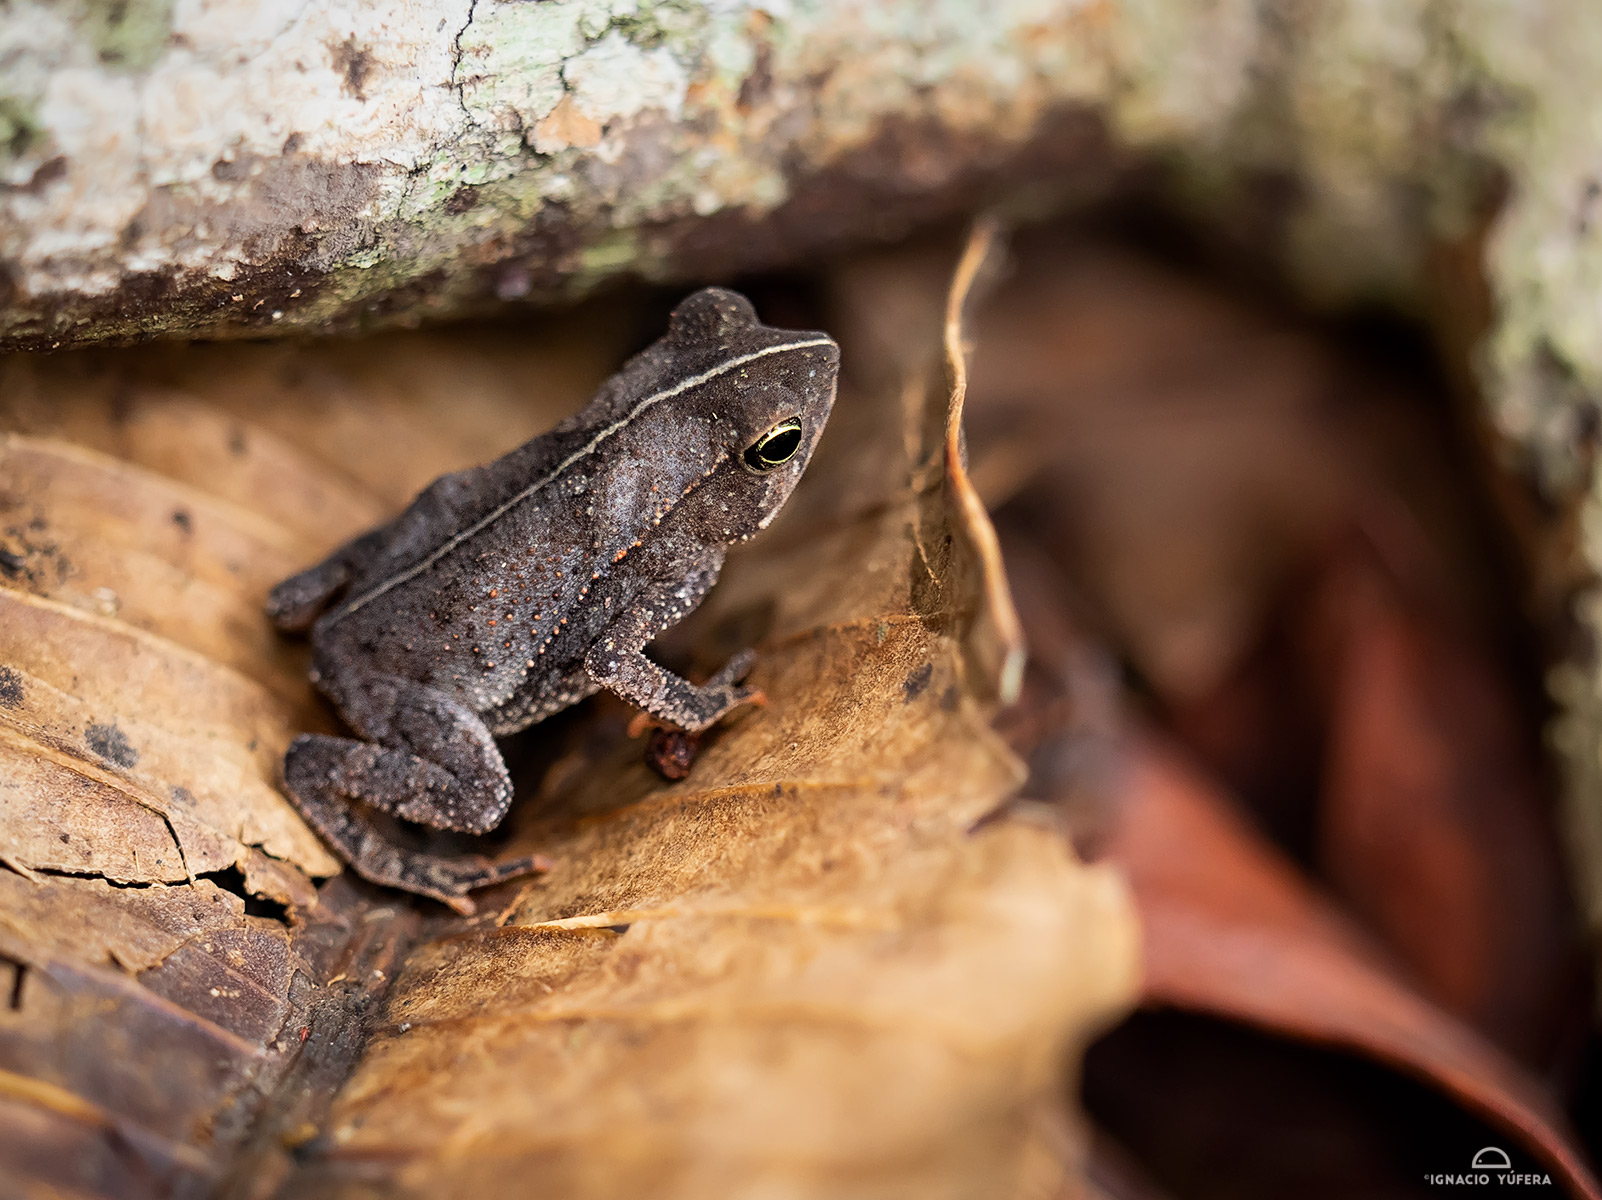 Leaf-litter toad (Rhinella alata), Gamboa, Panama, April